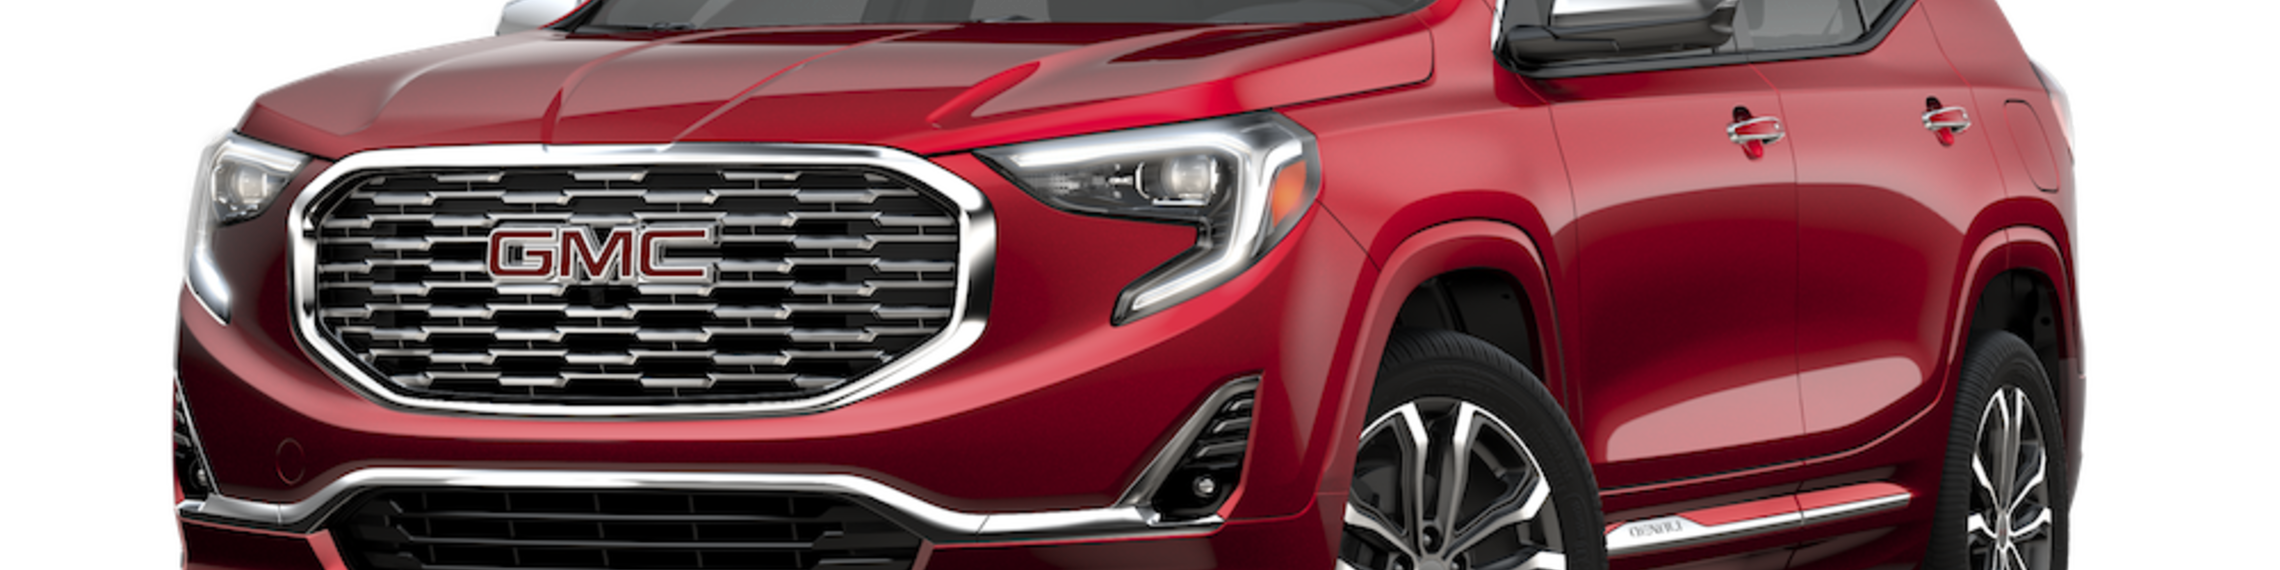 Gmc Terrain2018 Red